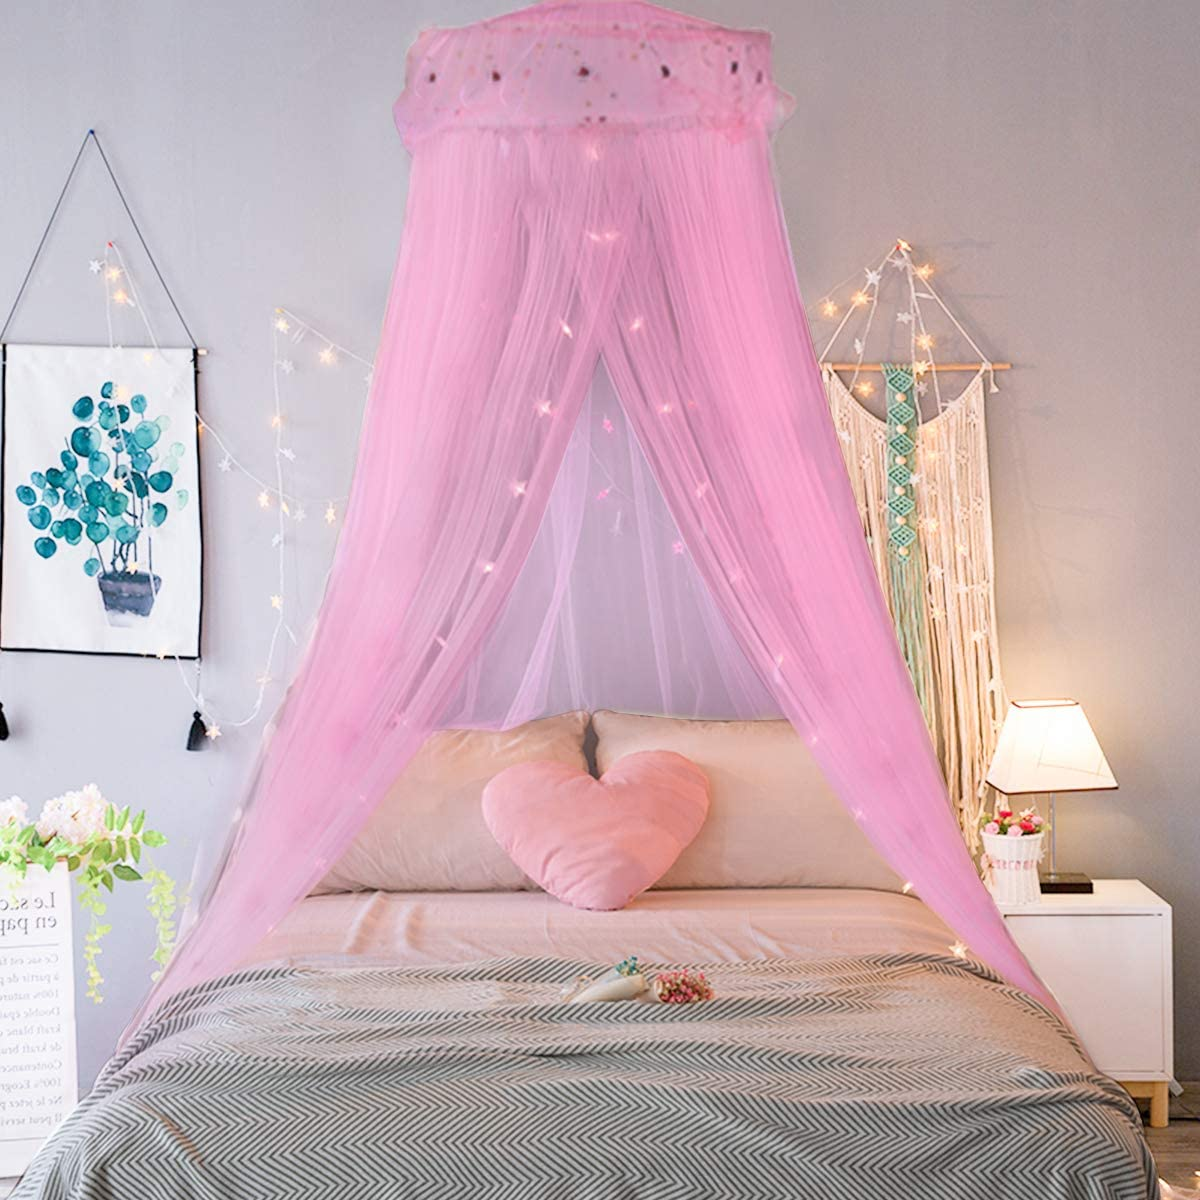 Bed Canopy Curtains Princess Mosquito Net Lace Dome Bed Canopy for Children Fly Insect Protection Indoor Outdoor Decorative Height 250cm//98.4in White Mosquito Net for Bed